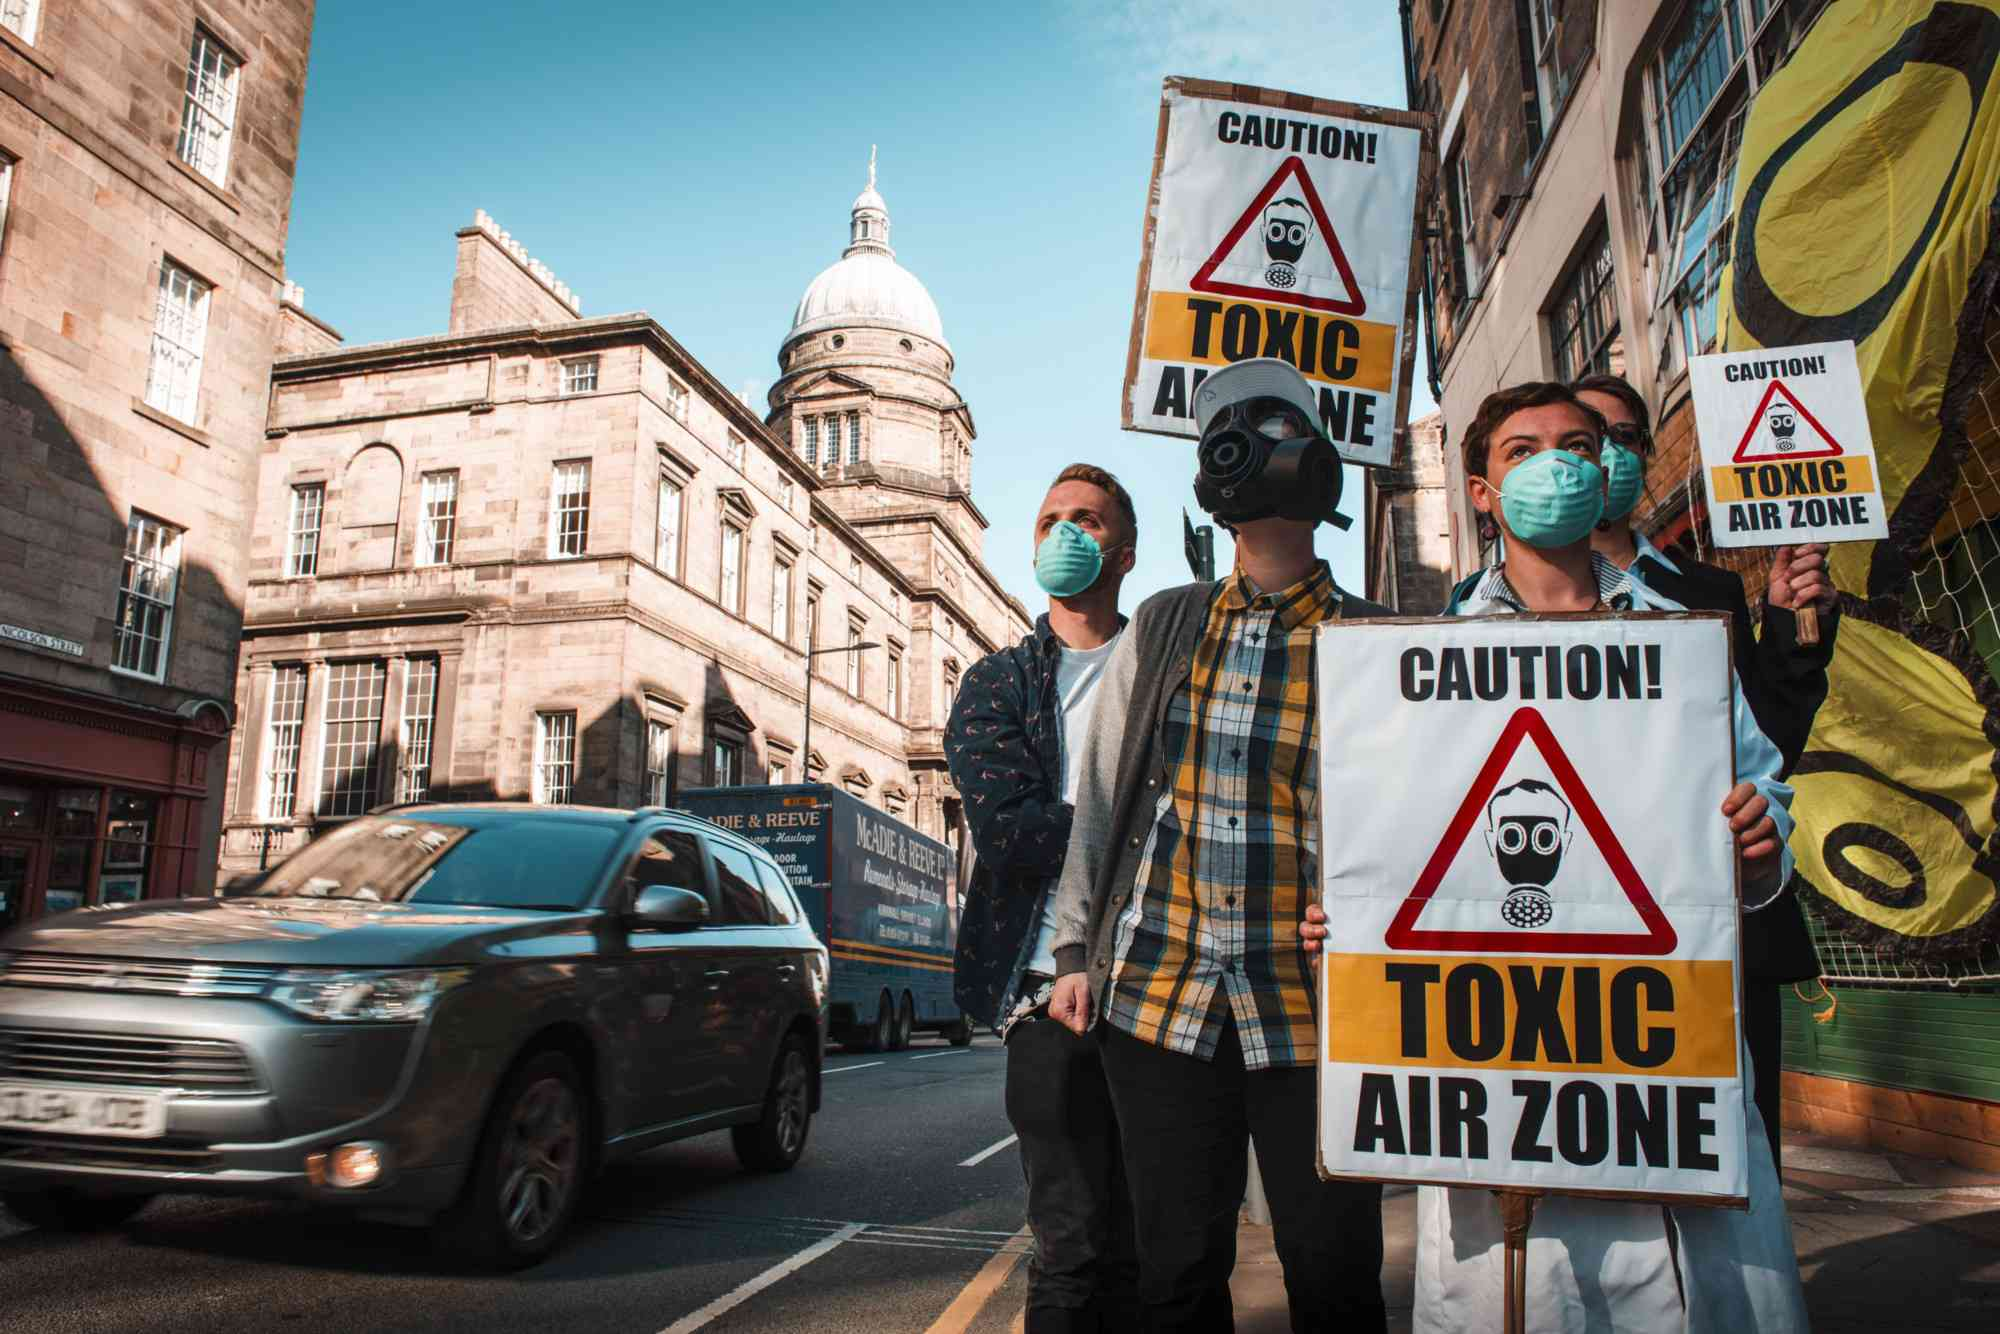 Campaigners gather to demand clean air after Edinburgh failed to meet air quality standards. Photo credit: Friends of the Earth Scotland/via Flickr [Licensed under CC BY 2.0]